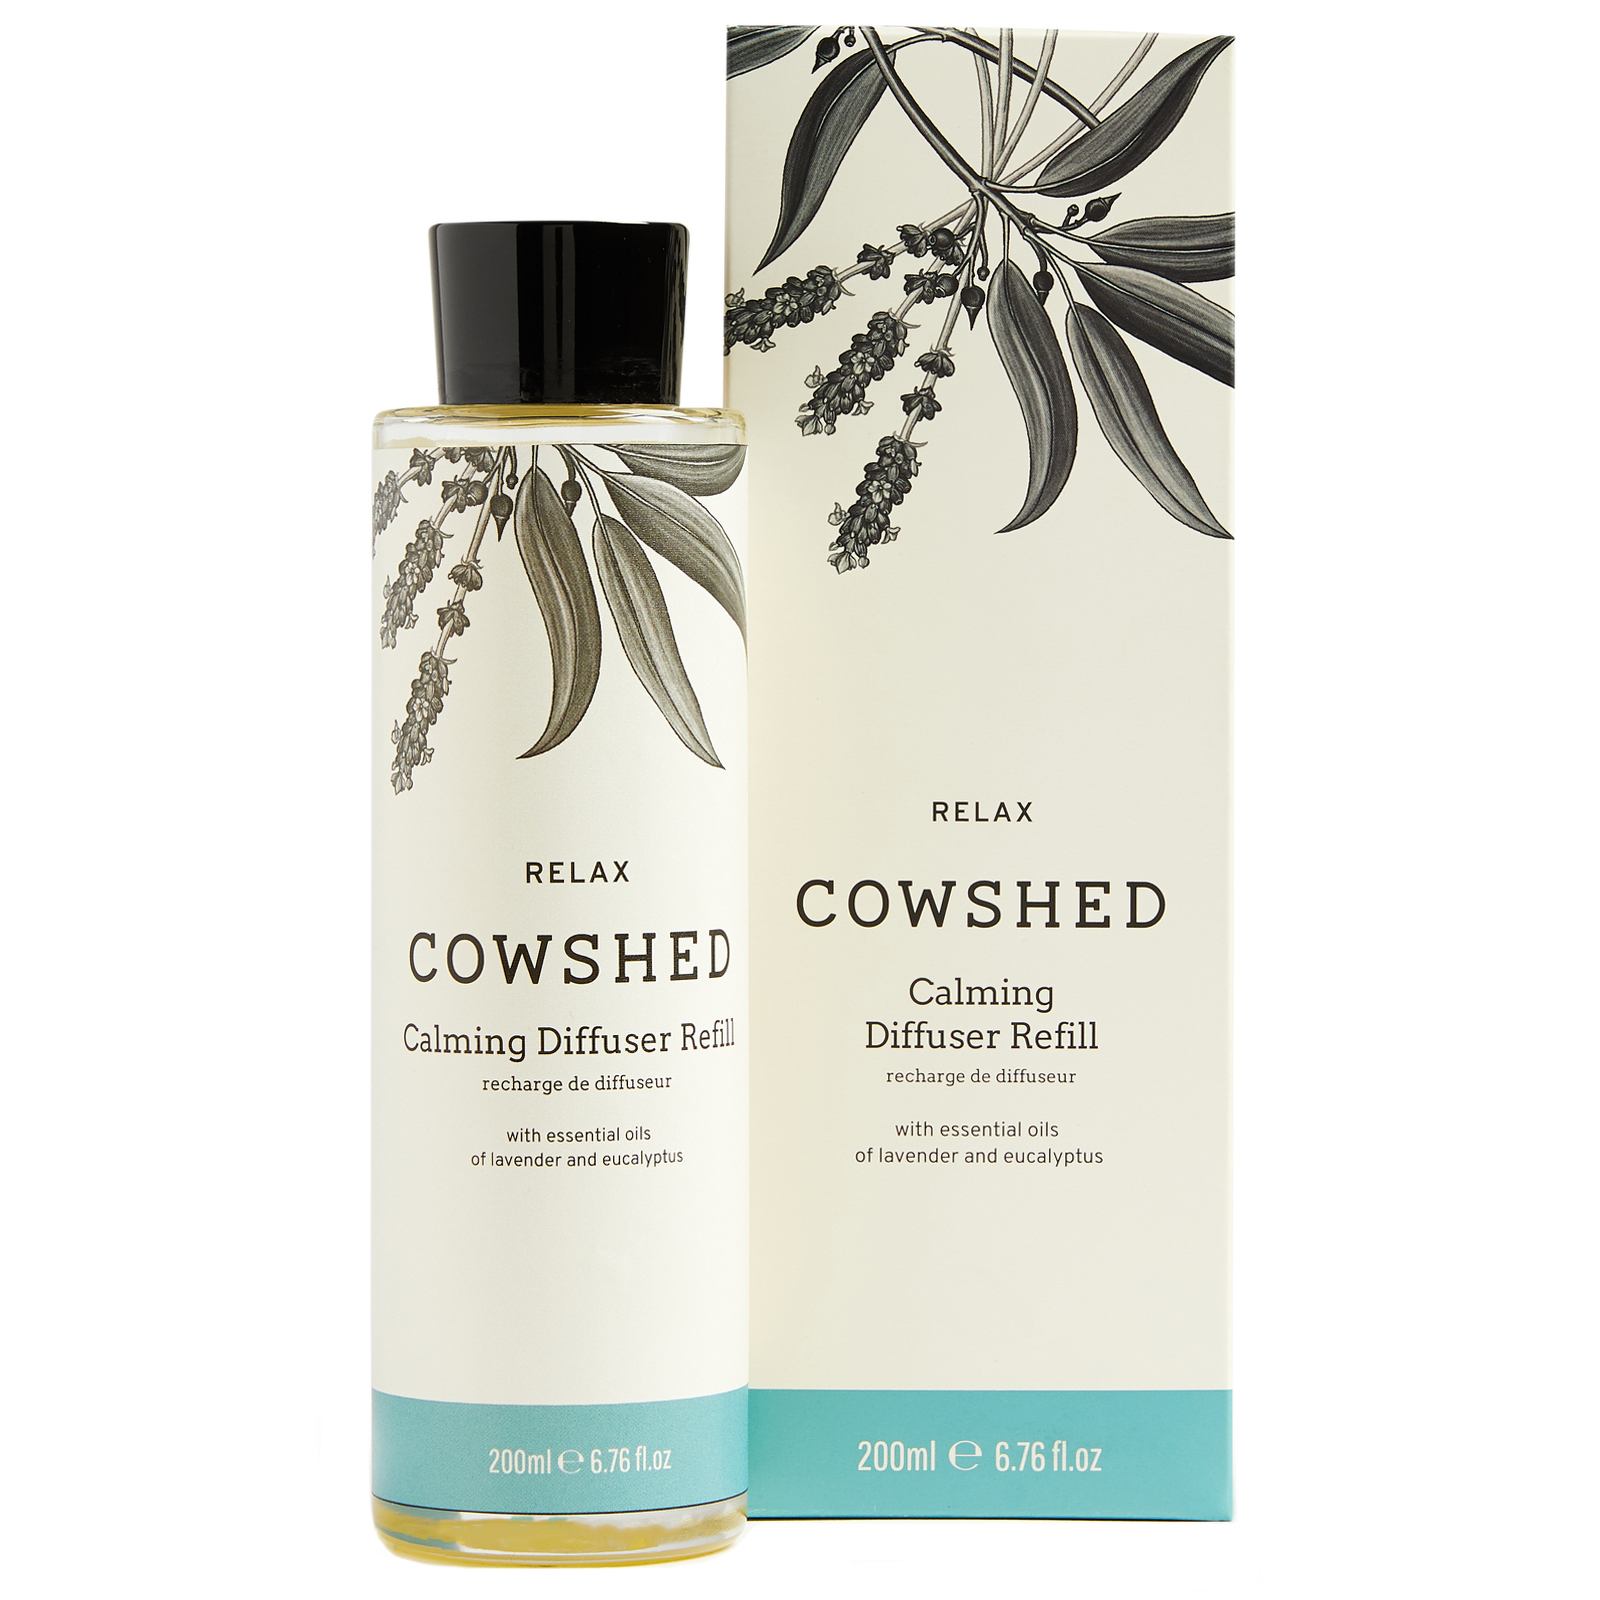 Cowshed At Home Relax Diffuser Refill 200ml